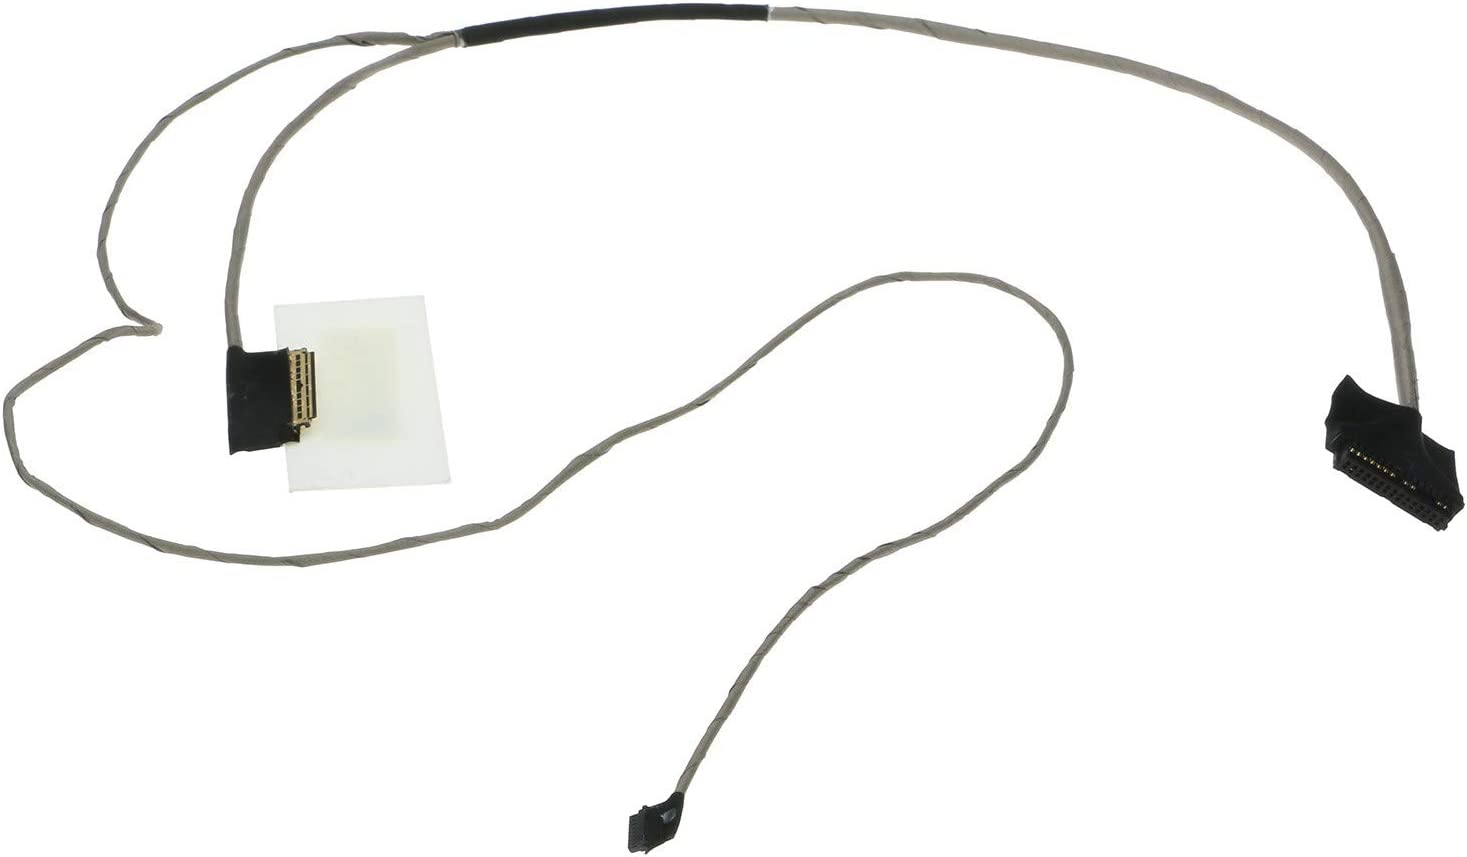 New LCD EDP Screen BIWP5 Cable for Lenovo TIANYI 310-15ISK 310-15IKB DC02002EZ00